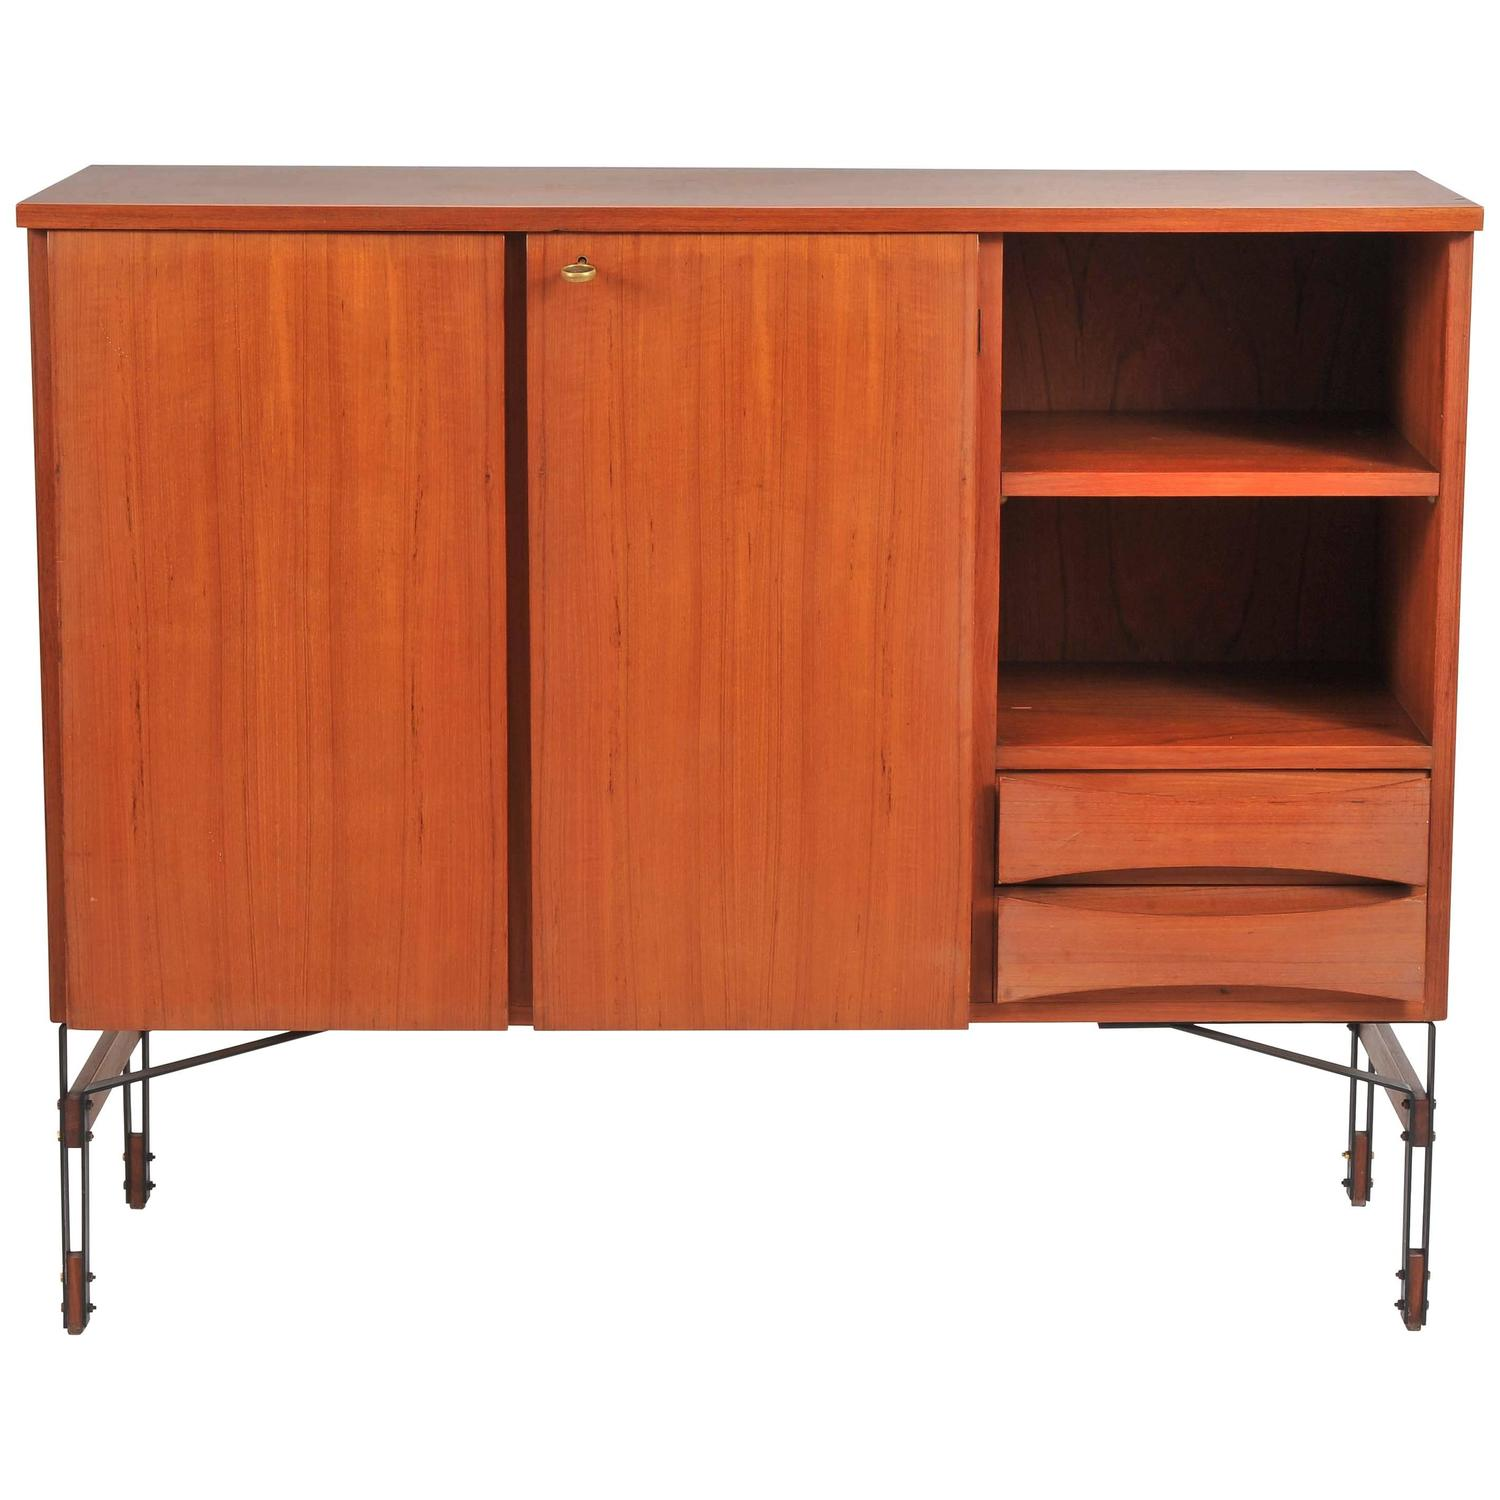 Sideboard in cherry wood for sale at stdibs